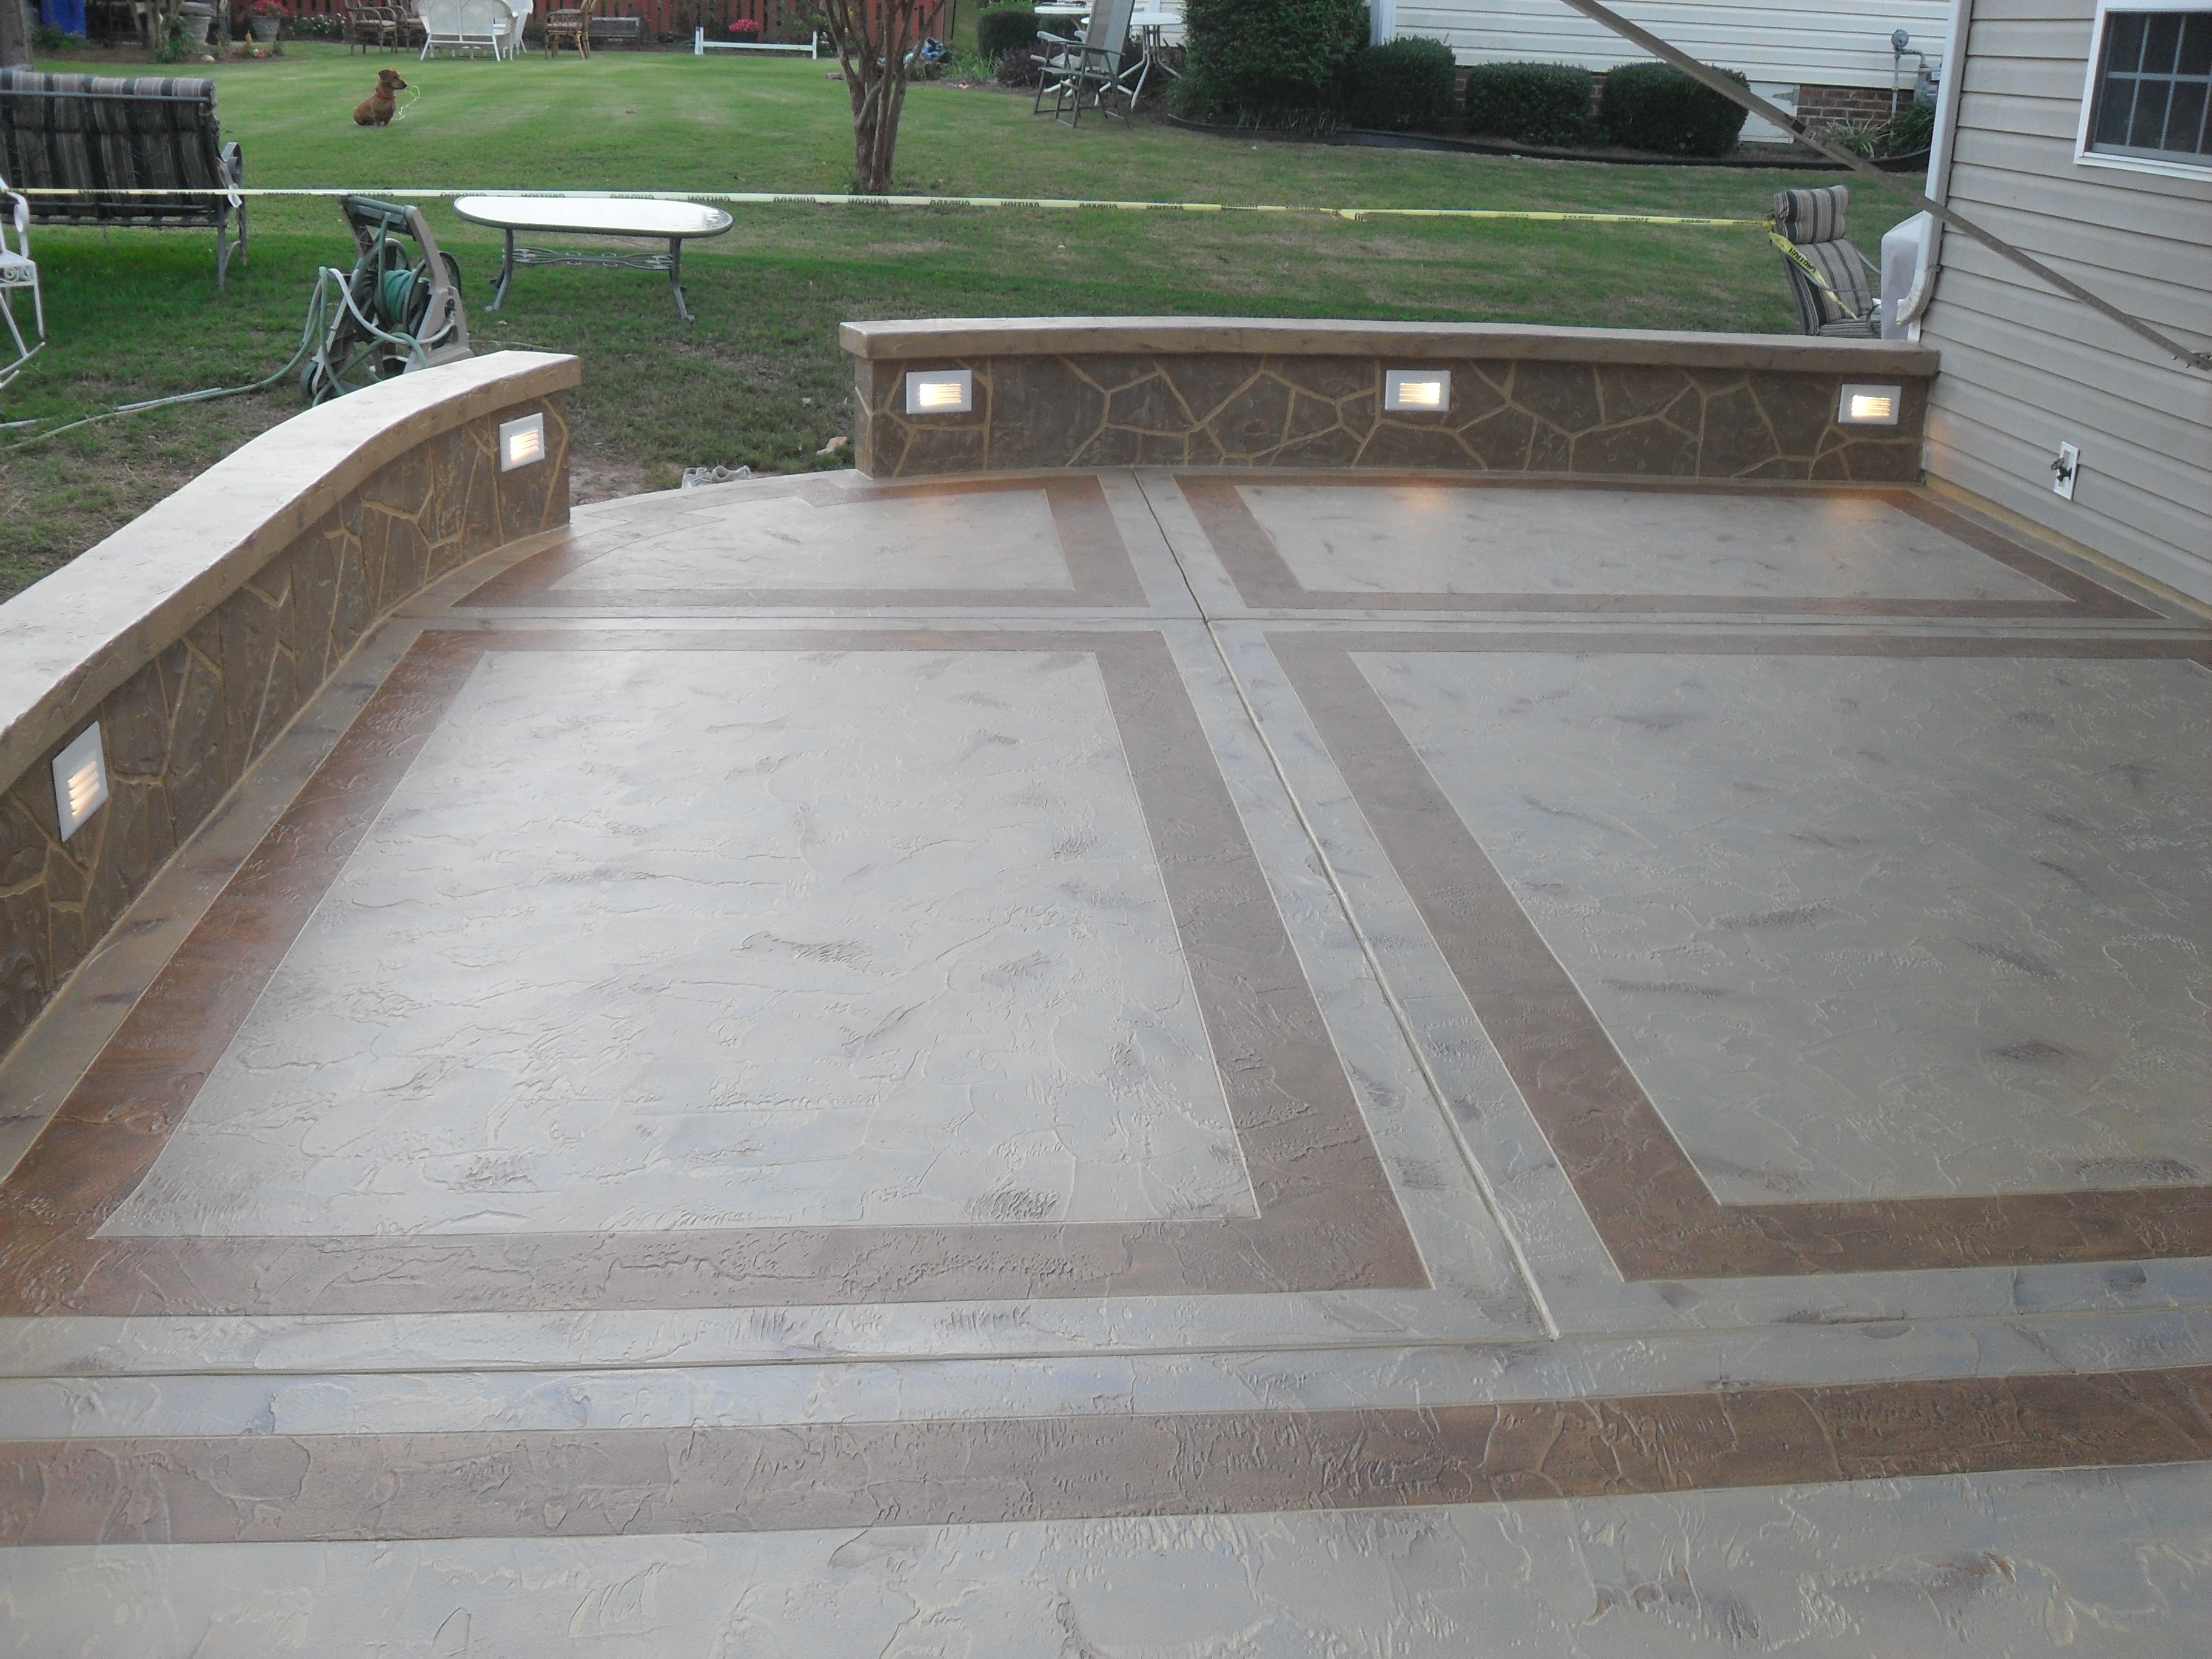 Concrete Patio Design Contractor, Ashburn Northern VA & DC ... on Backyard Masonry Ideas id=36519